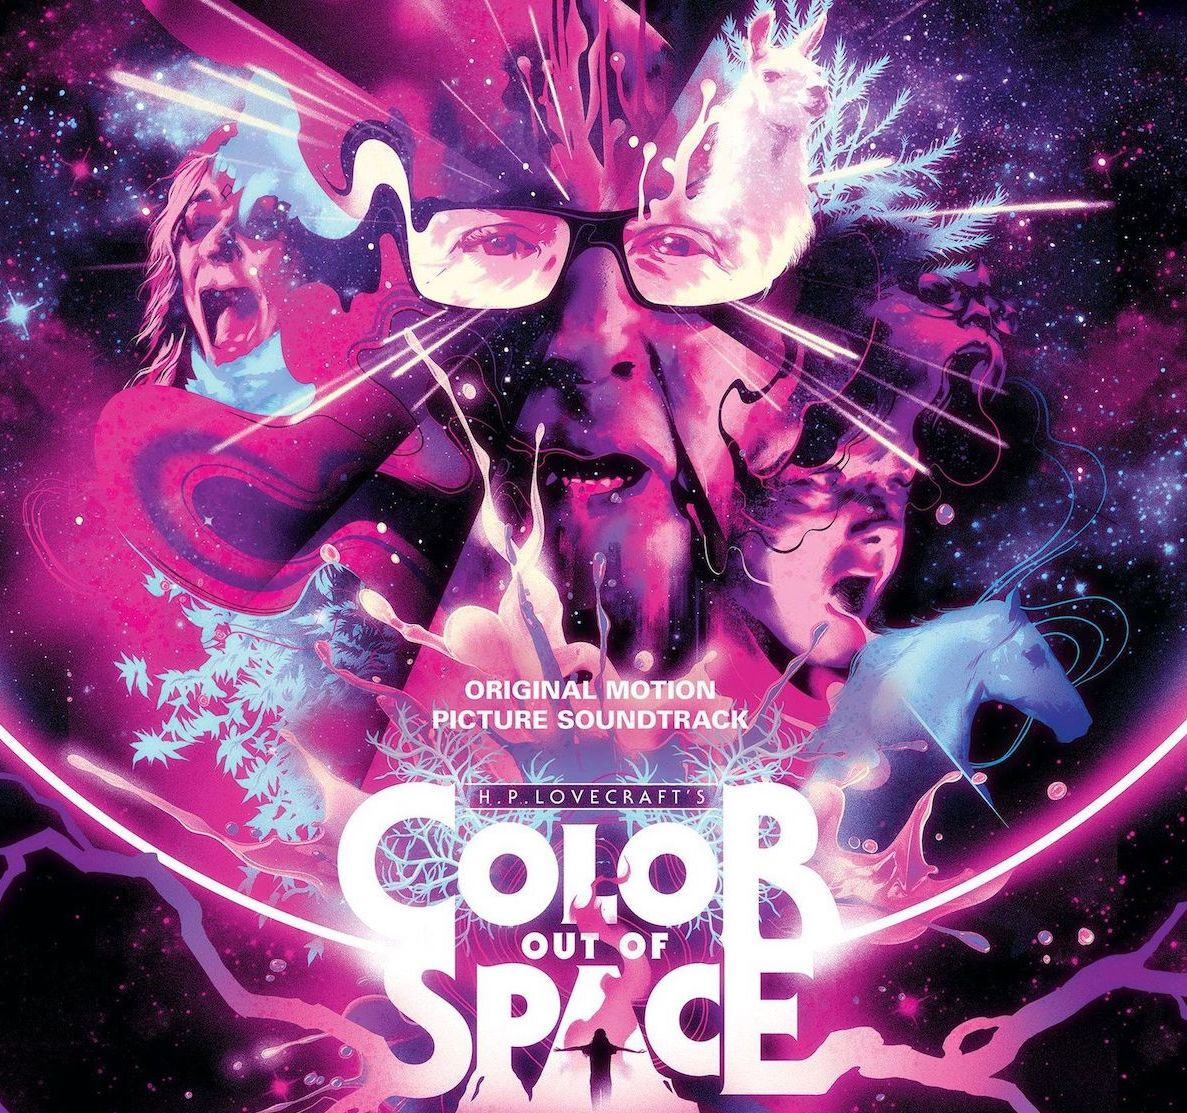 color out of space colin stetson interview soundtrack score vinyl waxwork milan